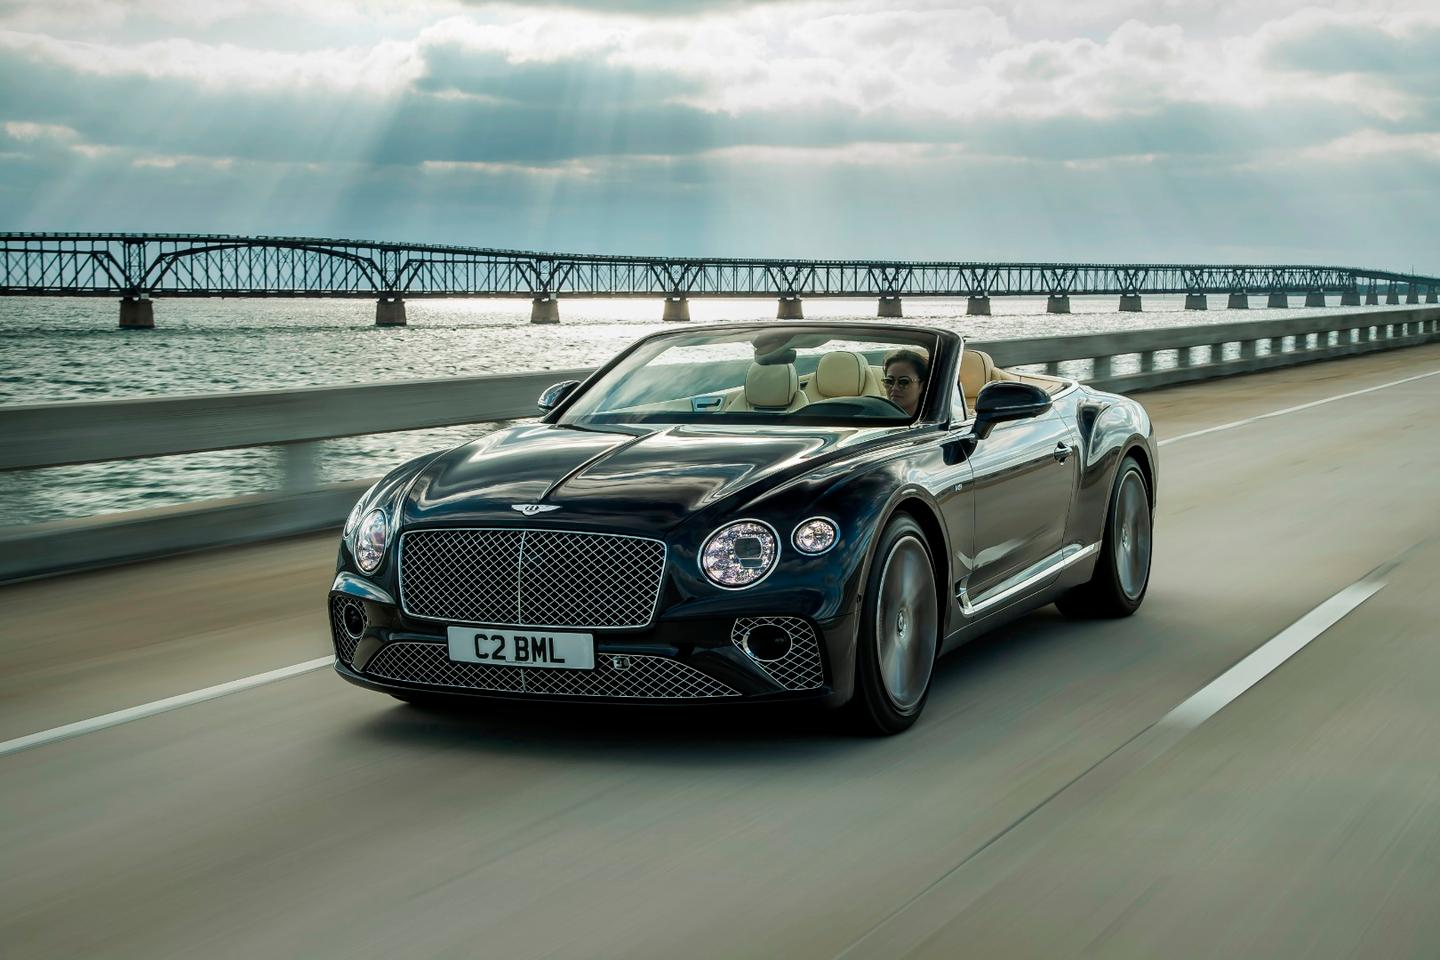 The Continental GT V8 Convertible on the road